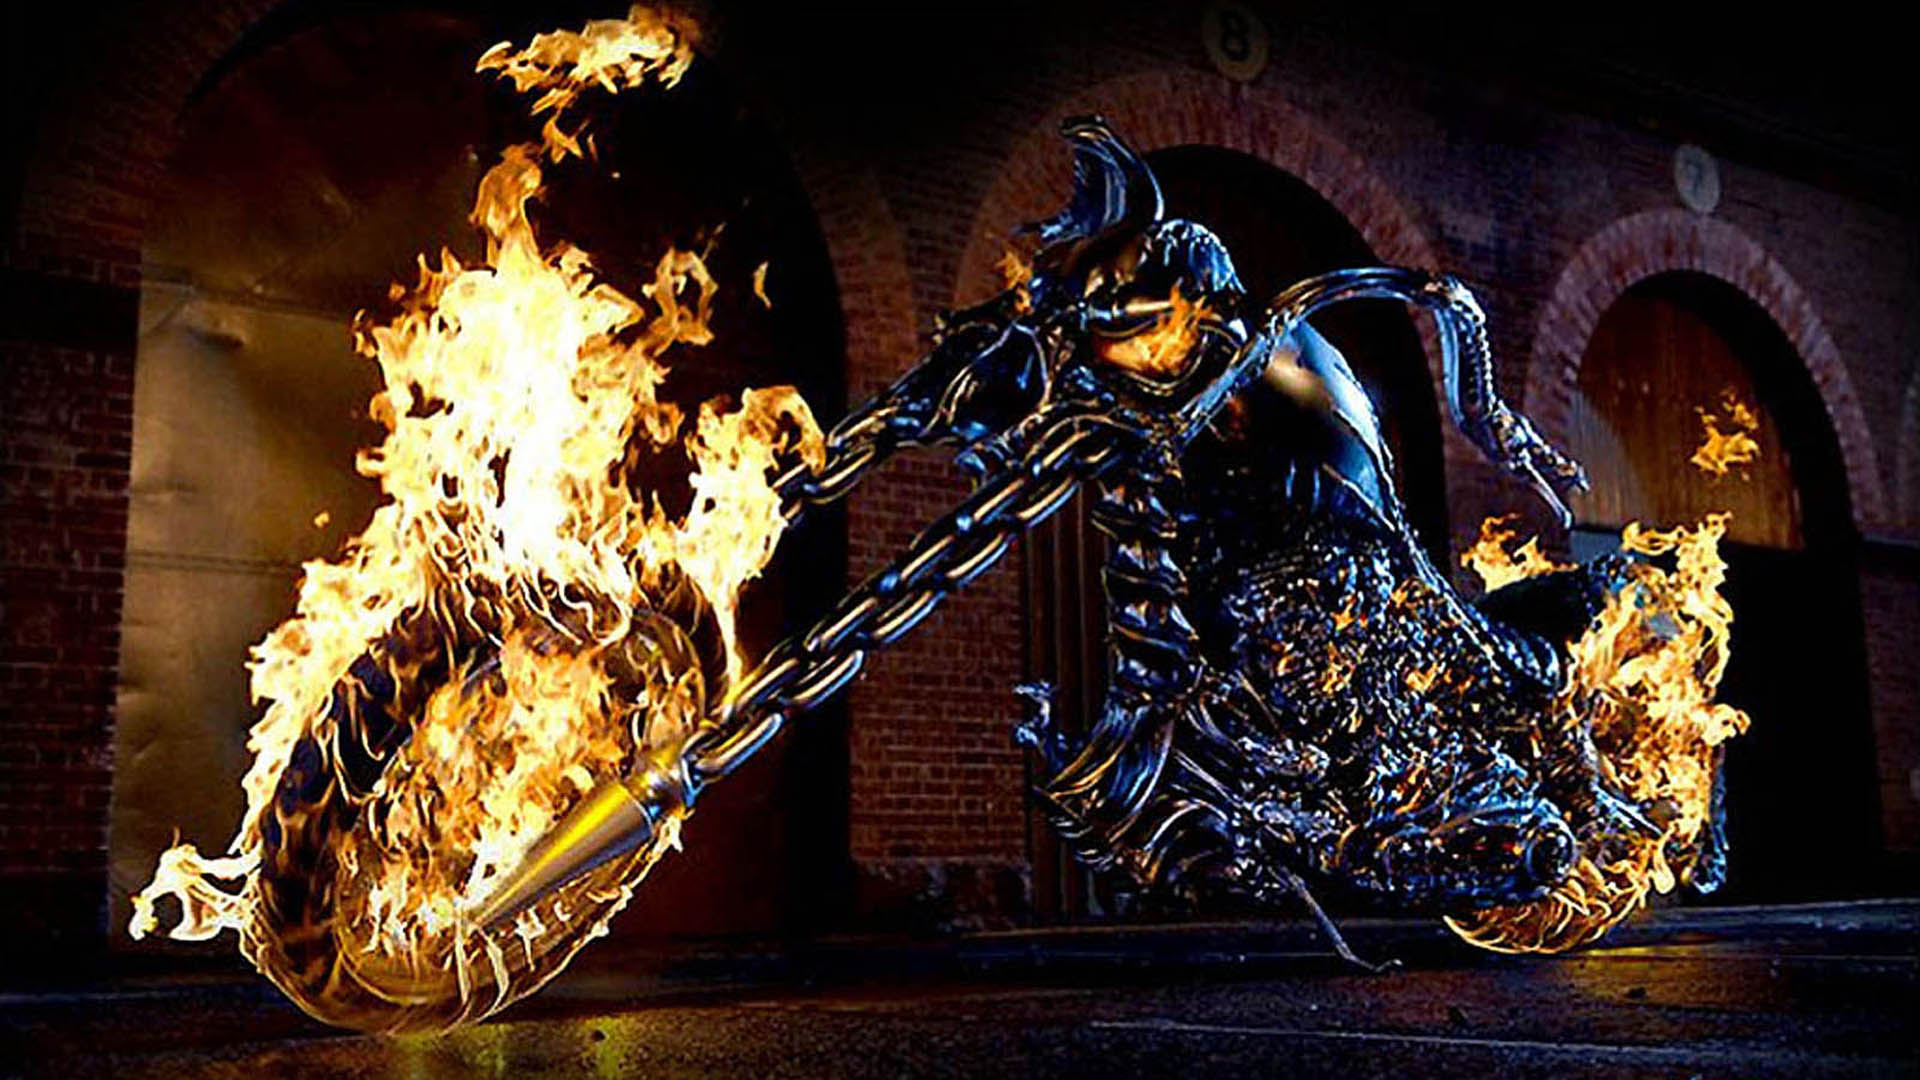 Ghost Rider Wallpaper 1920x1080 Wallpapers 1920x1080 1920x1080